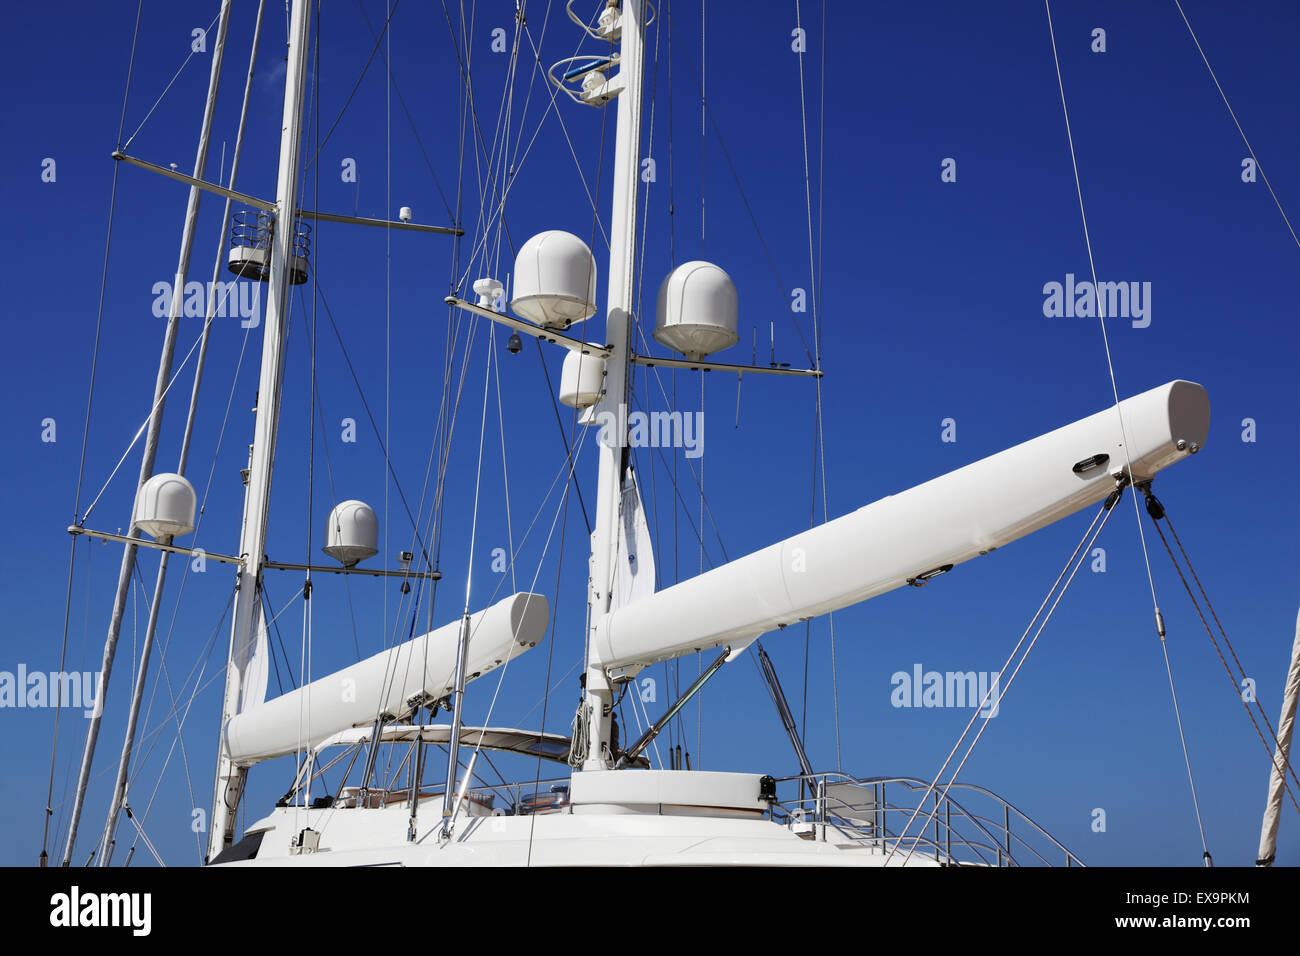 Chania city, Crete Island, Greece - JUNE 12, 2013: Masts and rigging of a luxury yacht close-up against a blue sky - Stock Image